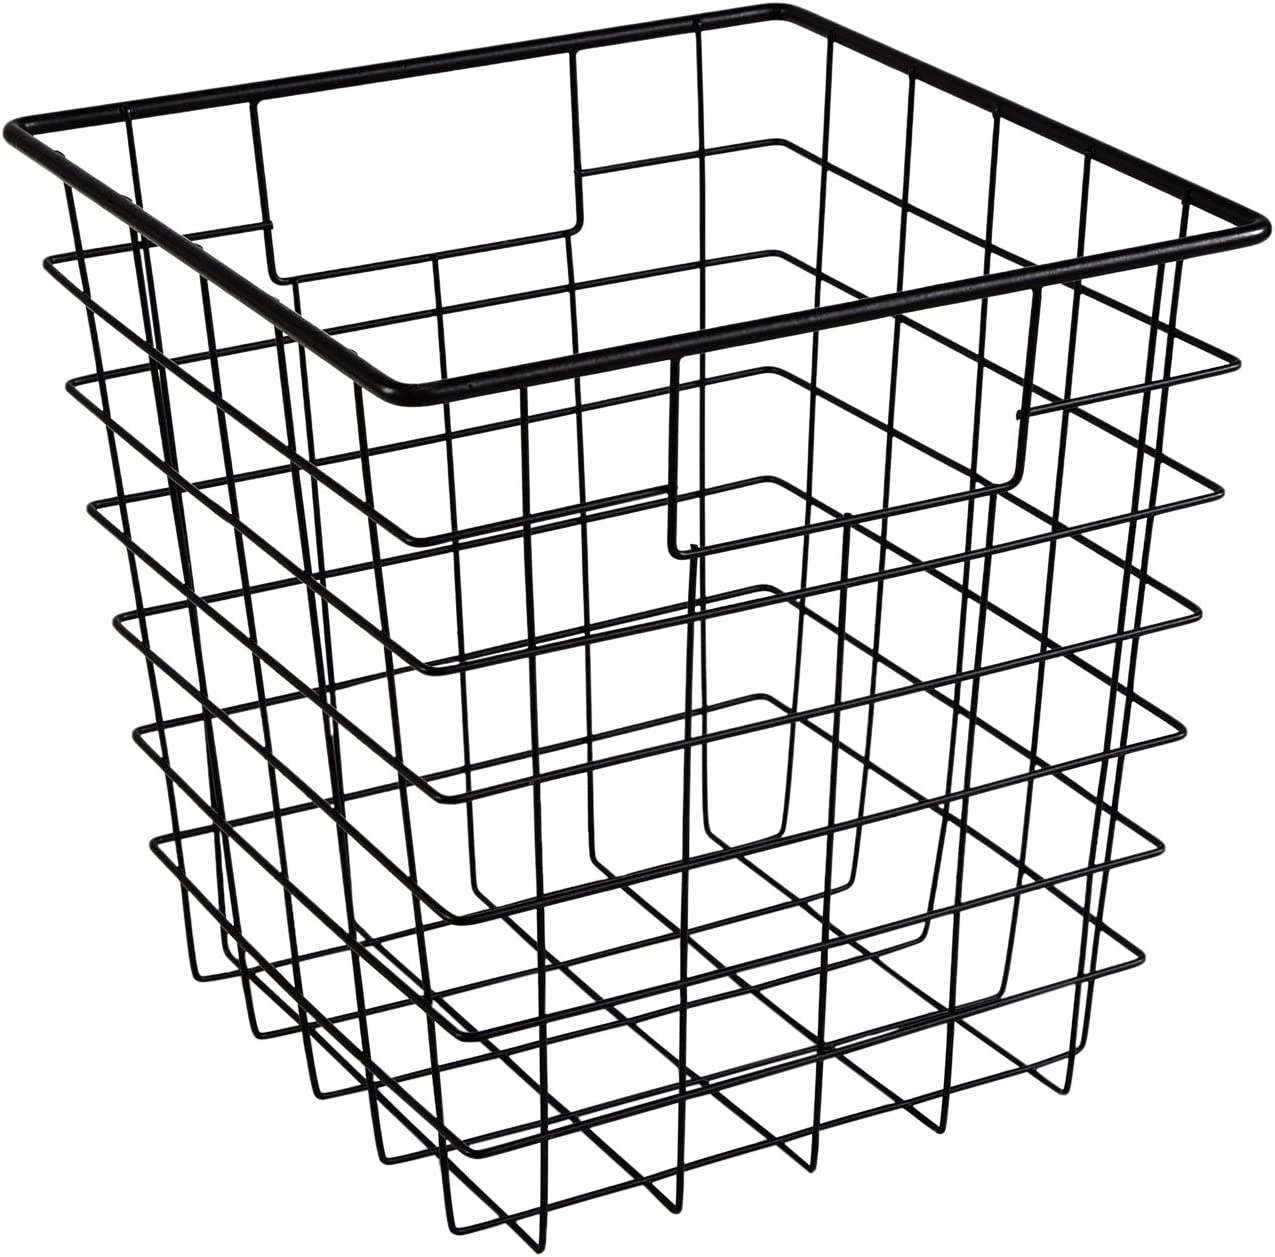 ClosetMaid 13033 Cubeicals Wire Storage Bin with Handles, Black